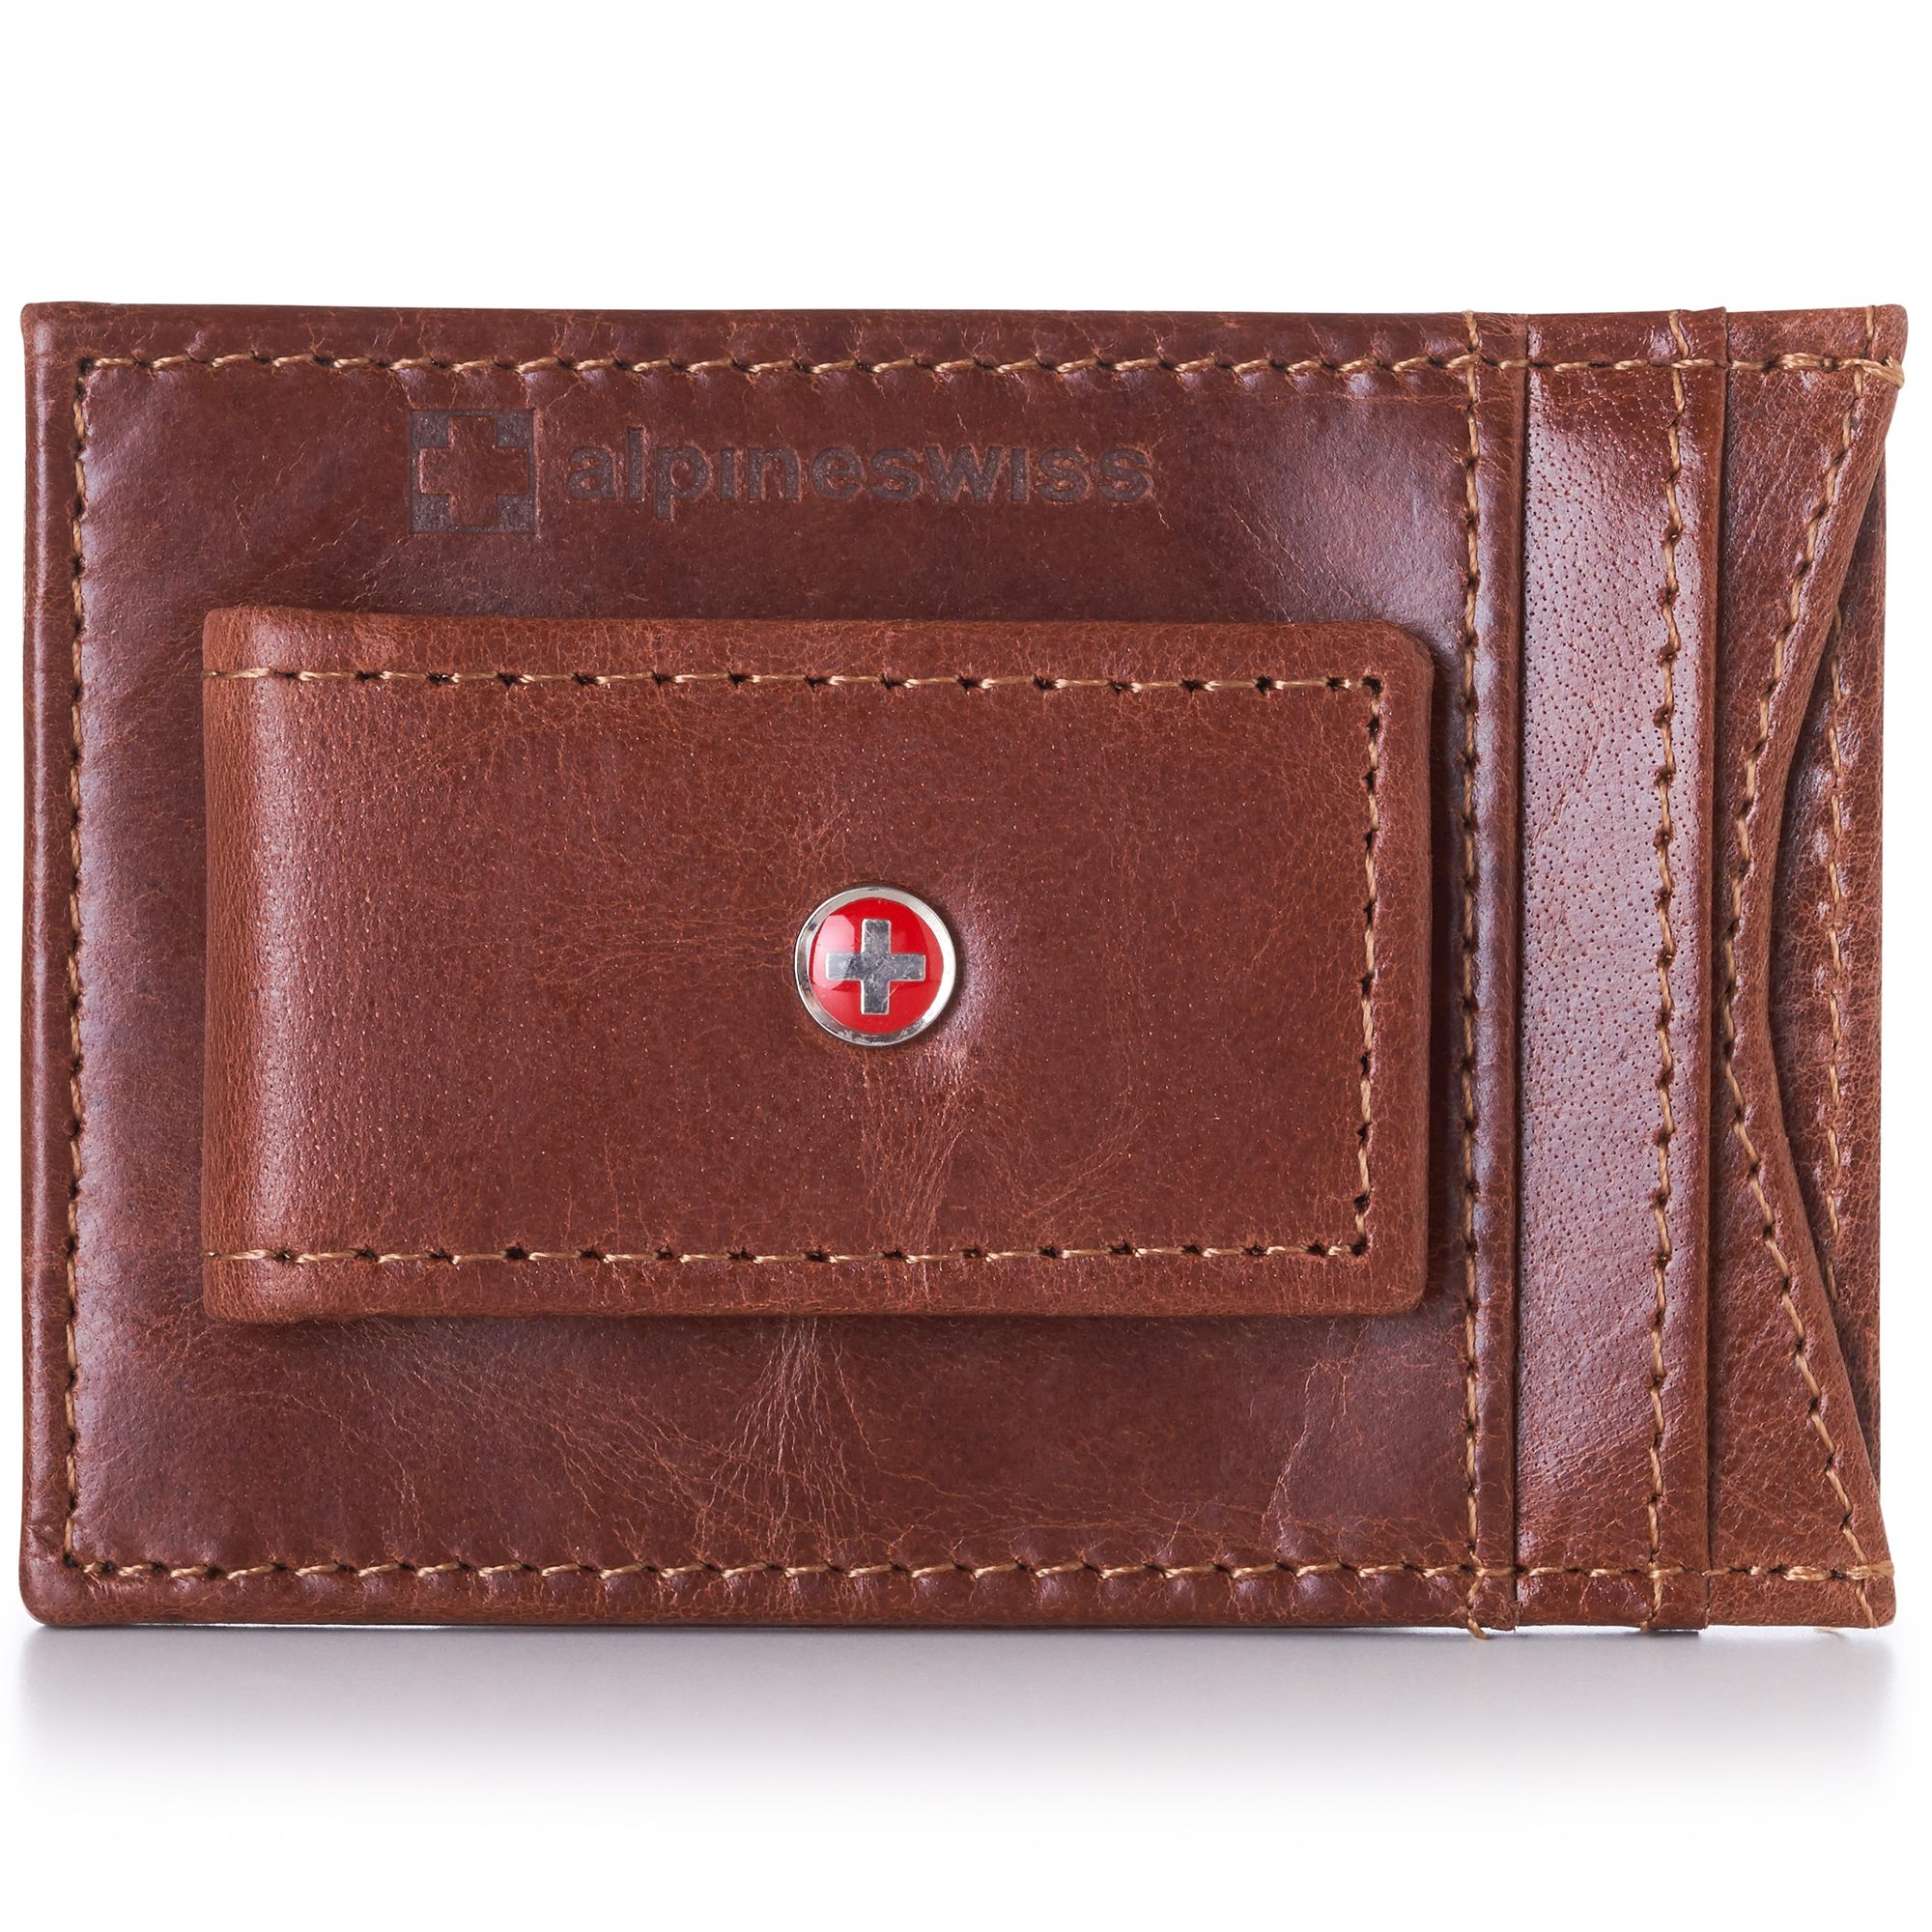 AlpineSwiss-Mens-Leather-Money-Clip-Magnet-Front-Pocket-Wallet-Slim-ID-Card-Case thumbnail 35